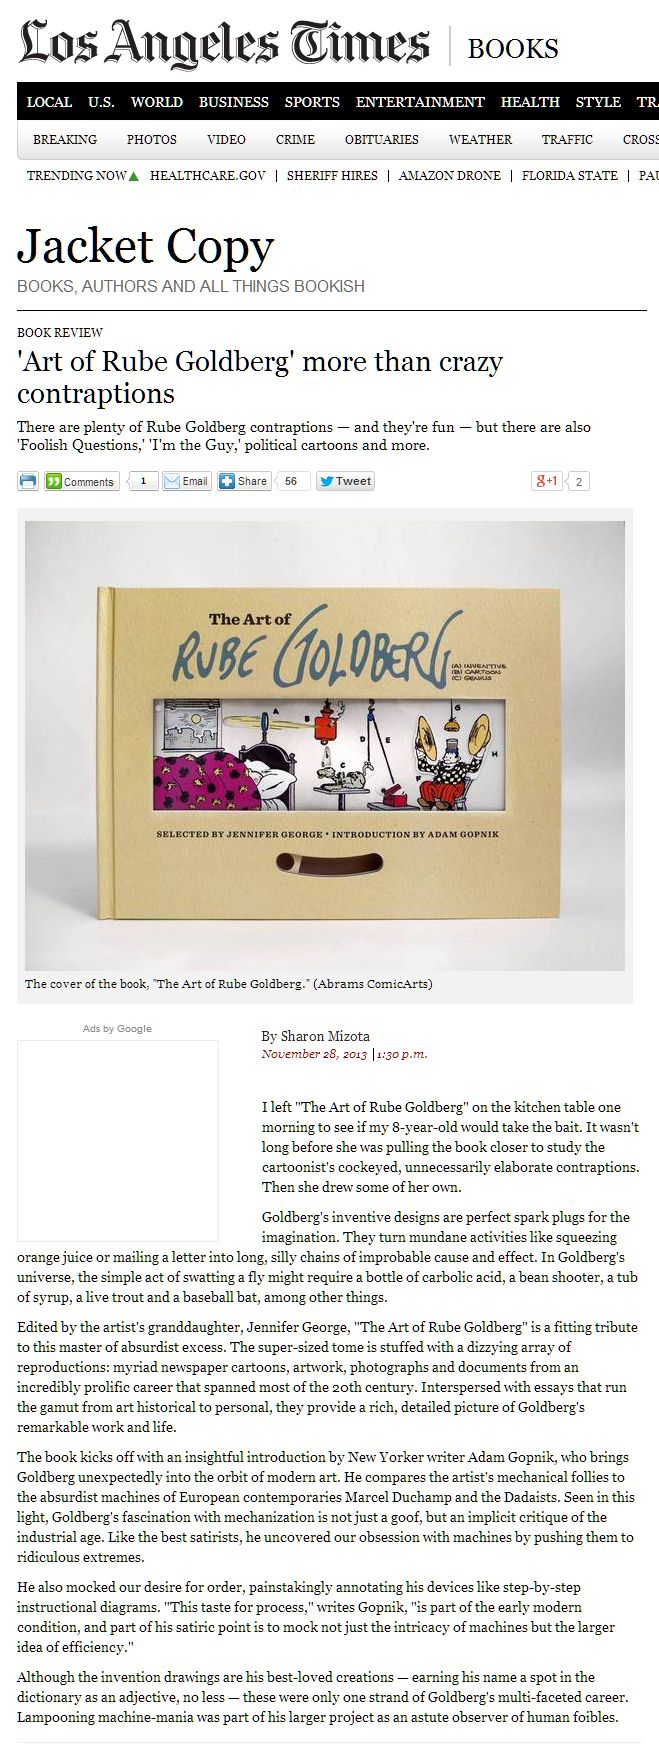 THE ART OF RUBE GOLDBERG draws insightful praise from Sharon Mizota at the LA Times (November 29, 2013)